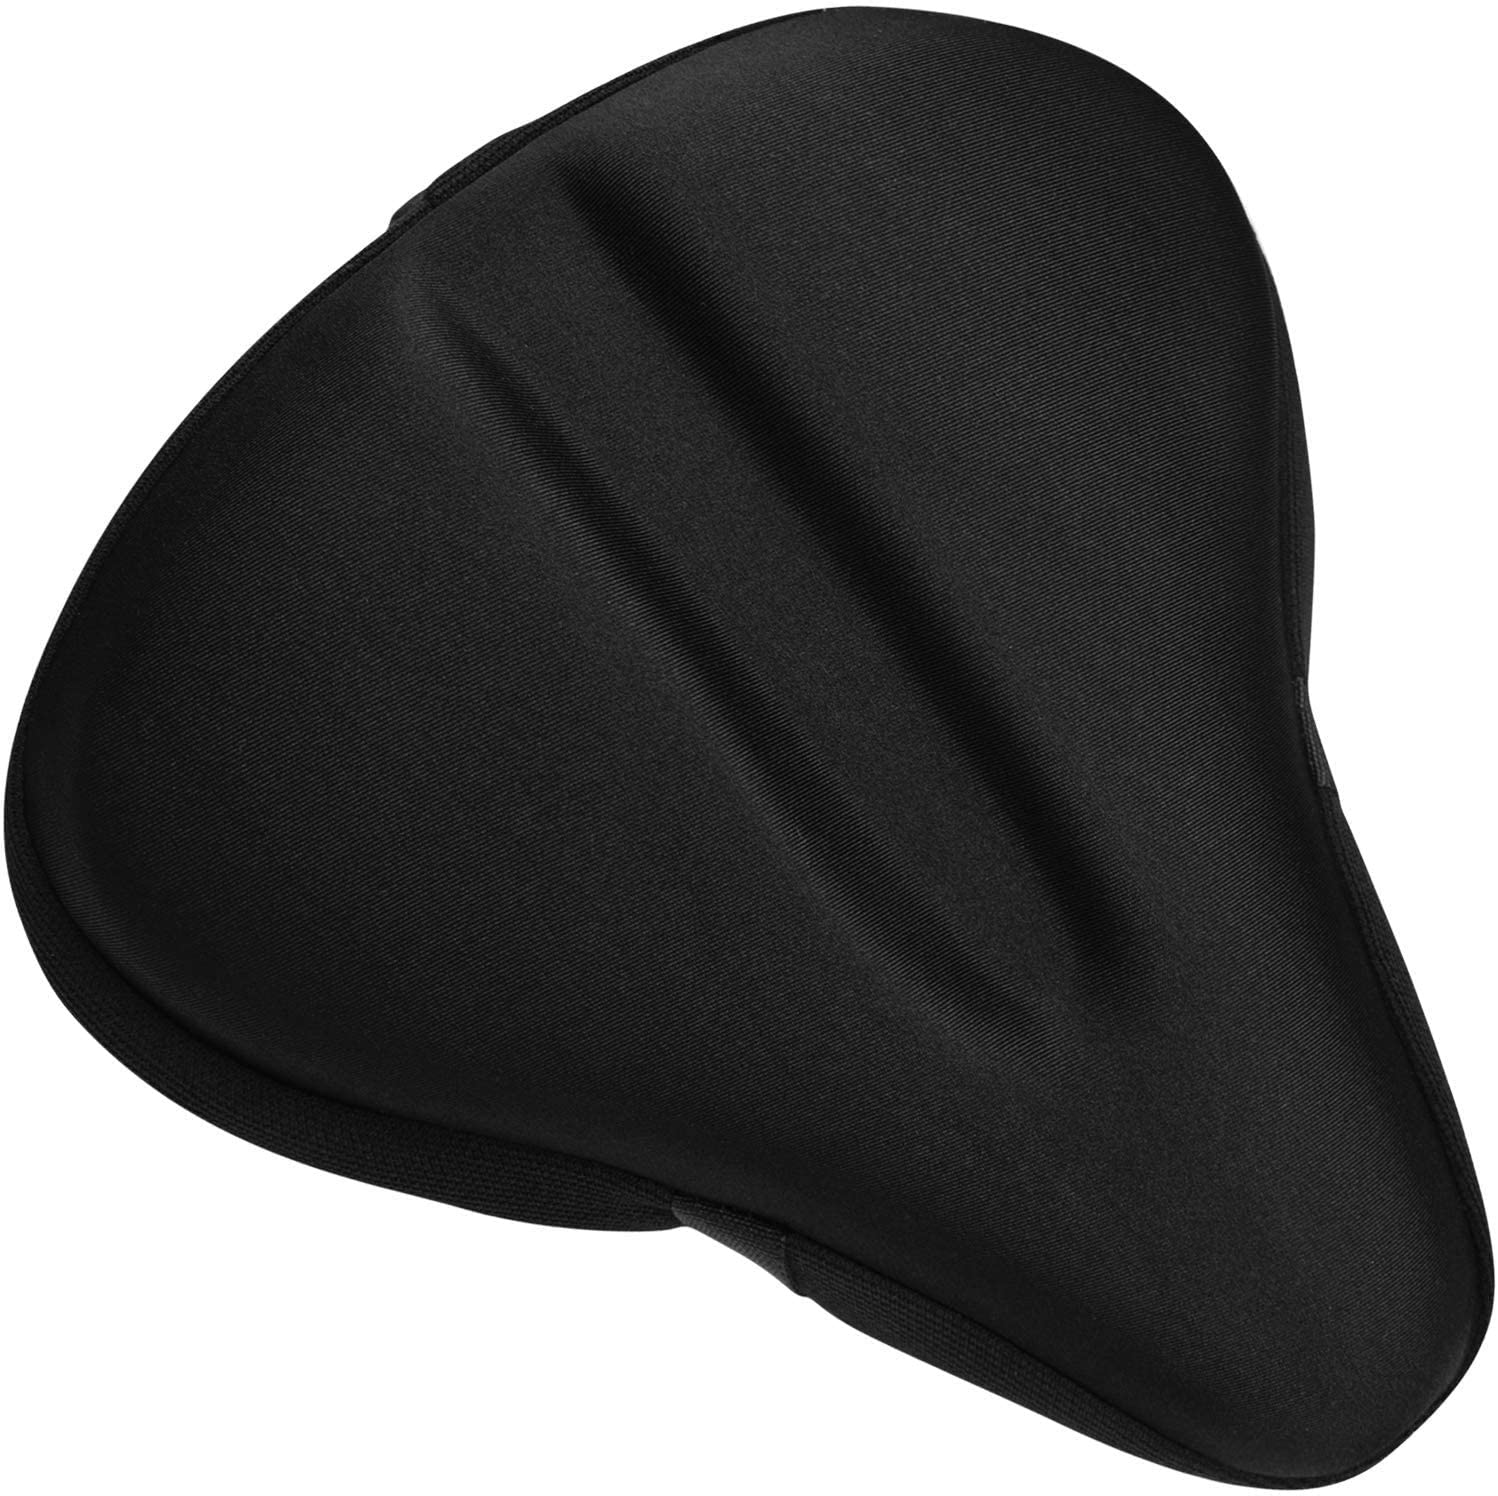 XunHe Bike Seat Cover Padded Non-slip Thick Silicone Bicycle Saddle Cushion Cover Breathable Lightweight Comfortable Cover Suitable for Mountain and Road Bike Seat(28x18cm)